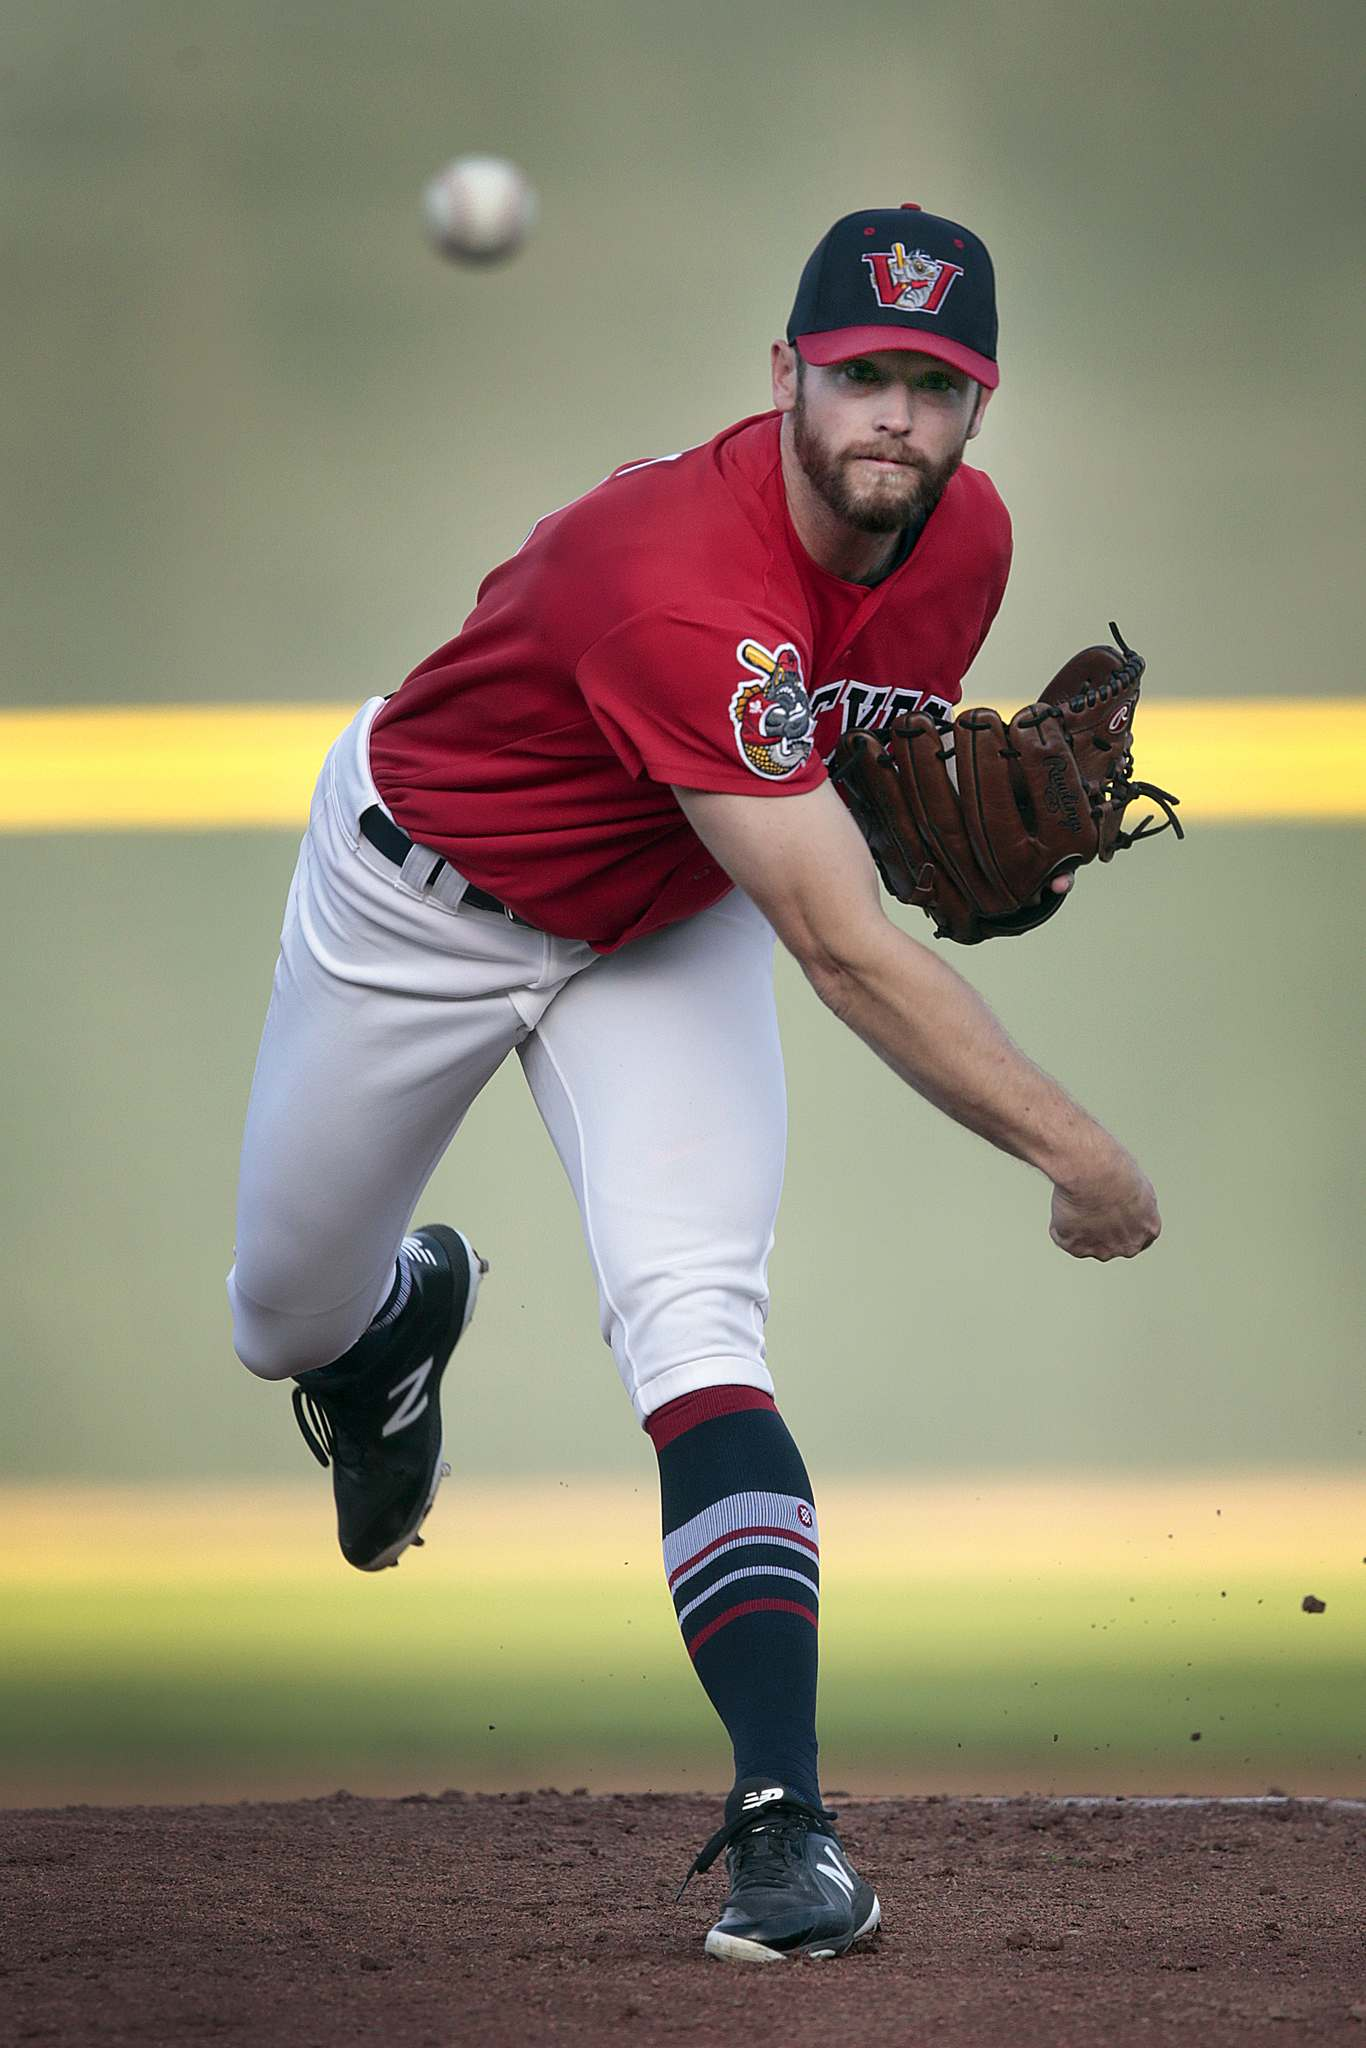 PHIL HOSSACK / WINNIPEG FREE PRESS</p><p>Winnipeg Goldeye's pitcher Kevin Hilton and his teammates take on the Sioux Falls Canaries this weekend.</p>